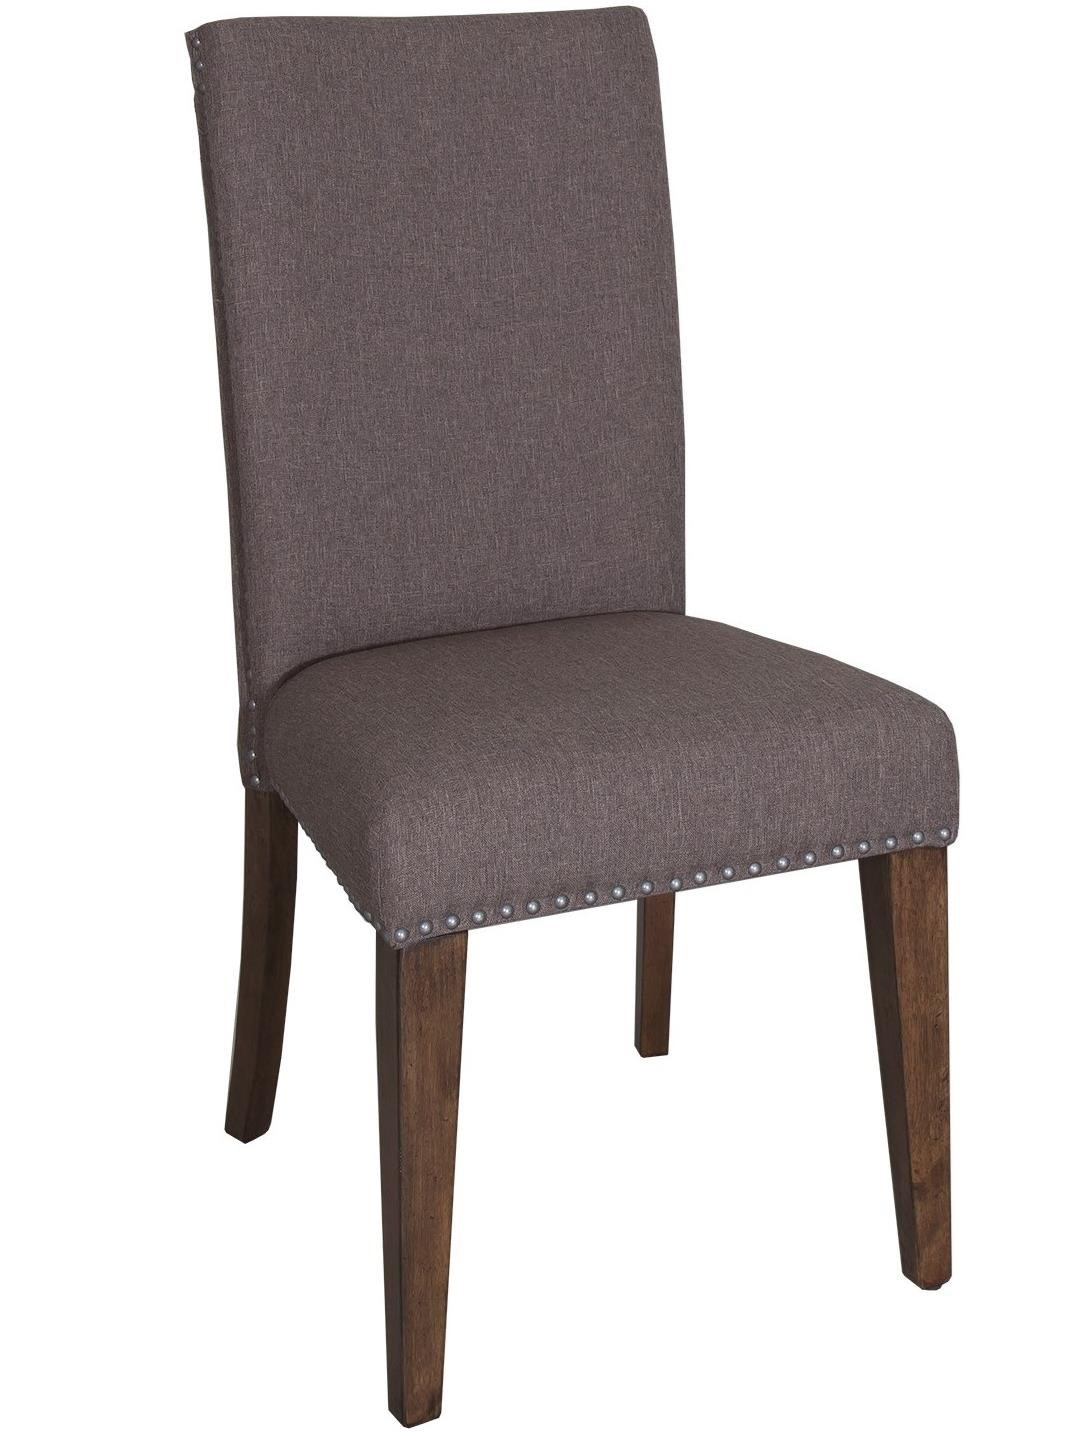 Liberty Furniture Ivy Park Upholstered Side Chair - Item Number: 563-C6501S-G